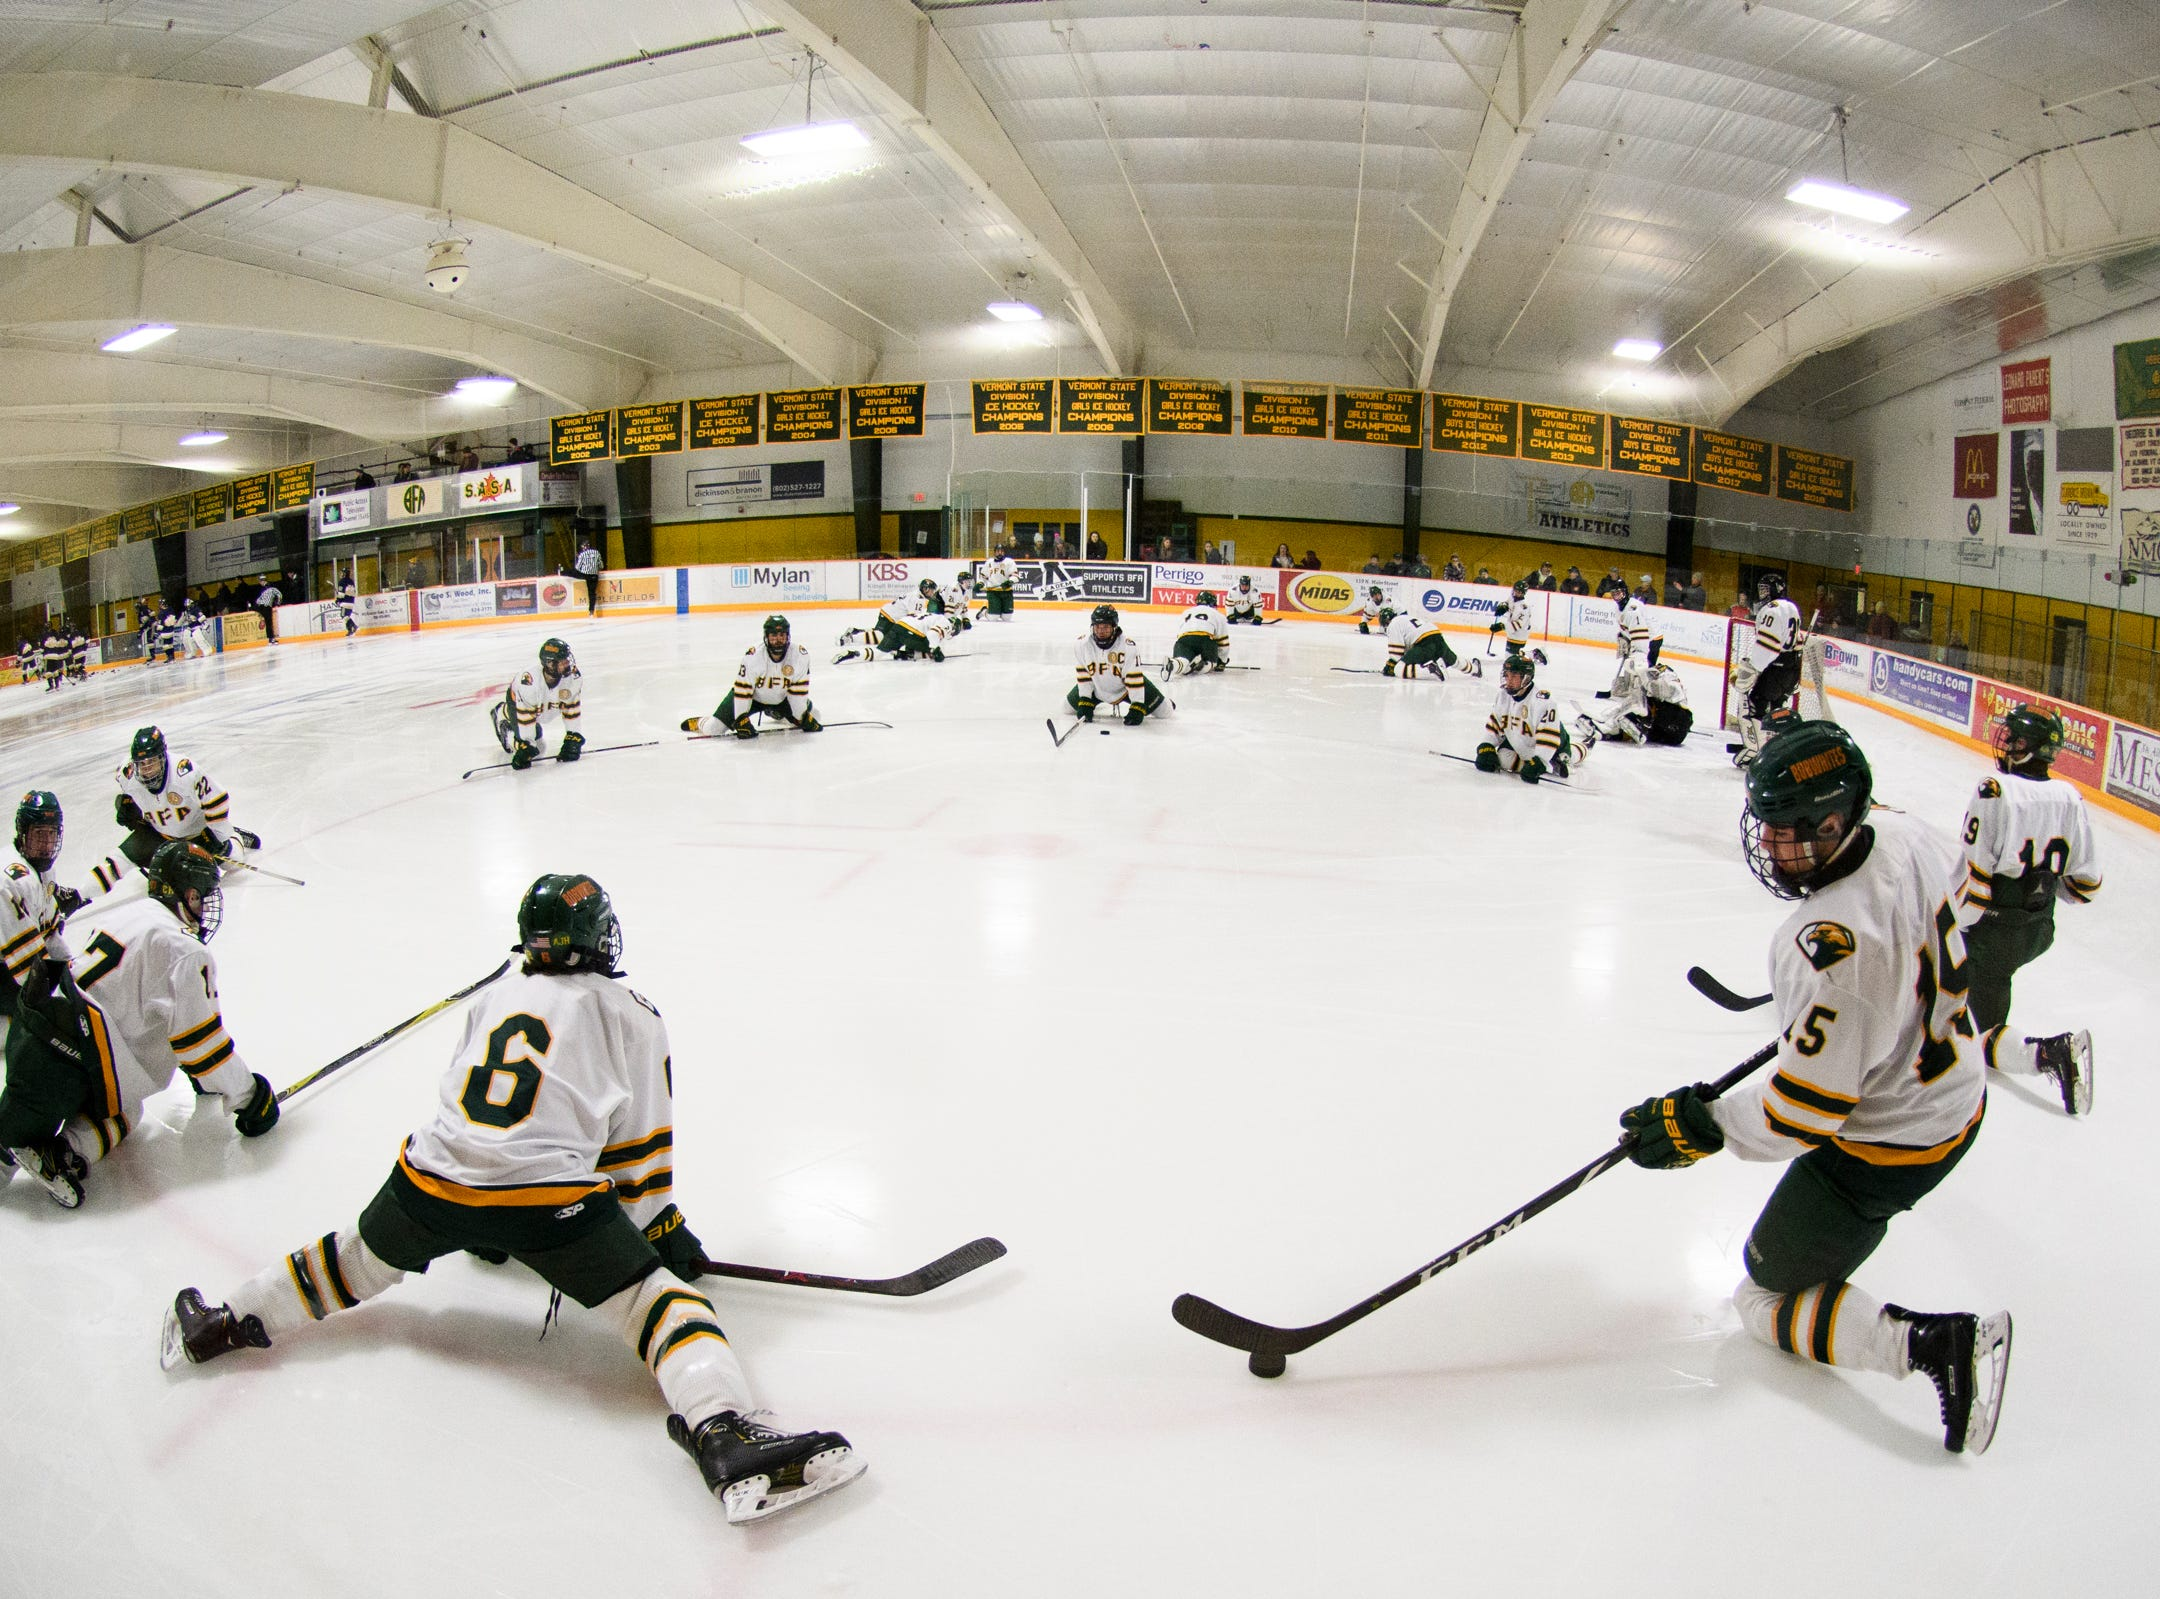 BFA warms up and stretches during the boys hockey game between the Essex Hornets and the BFA St. Albans Bobwhites at the Collins Perley sports complex on Monday night February 4, 2019 in St. Albans, Vermont.